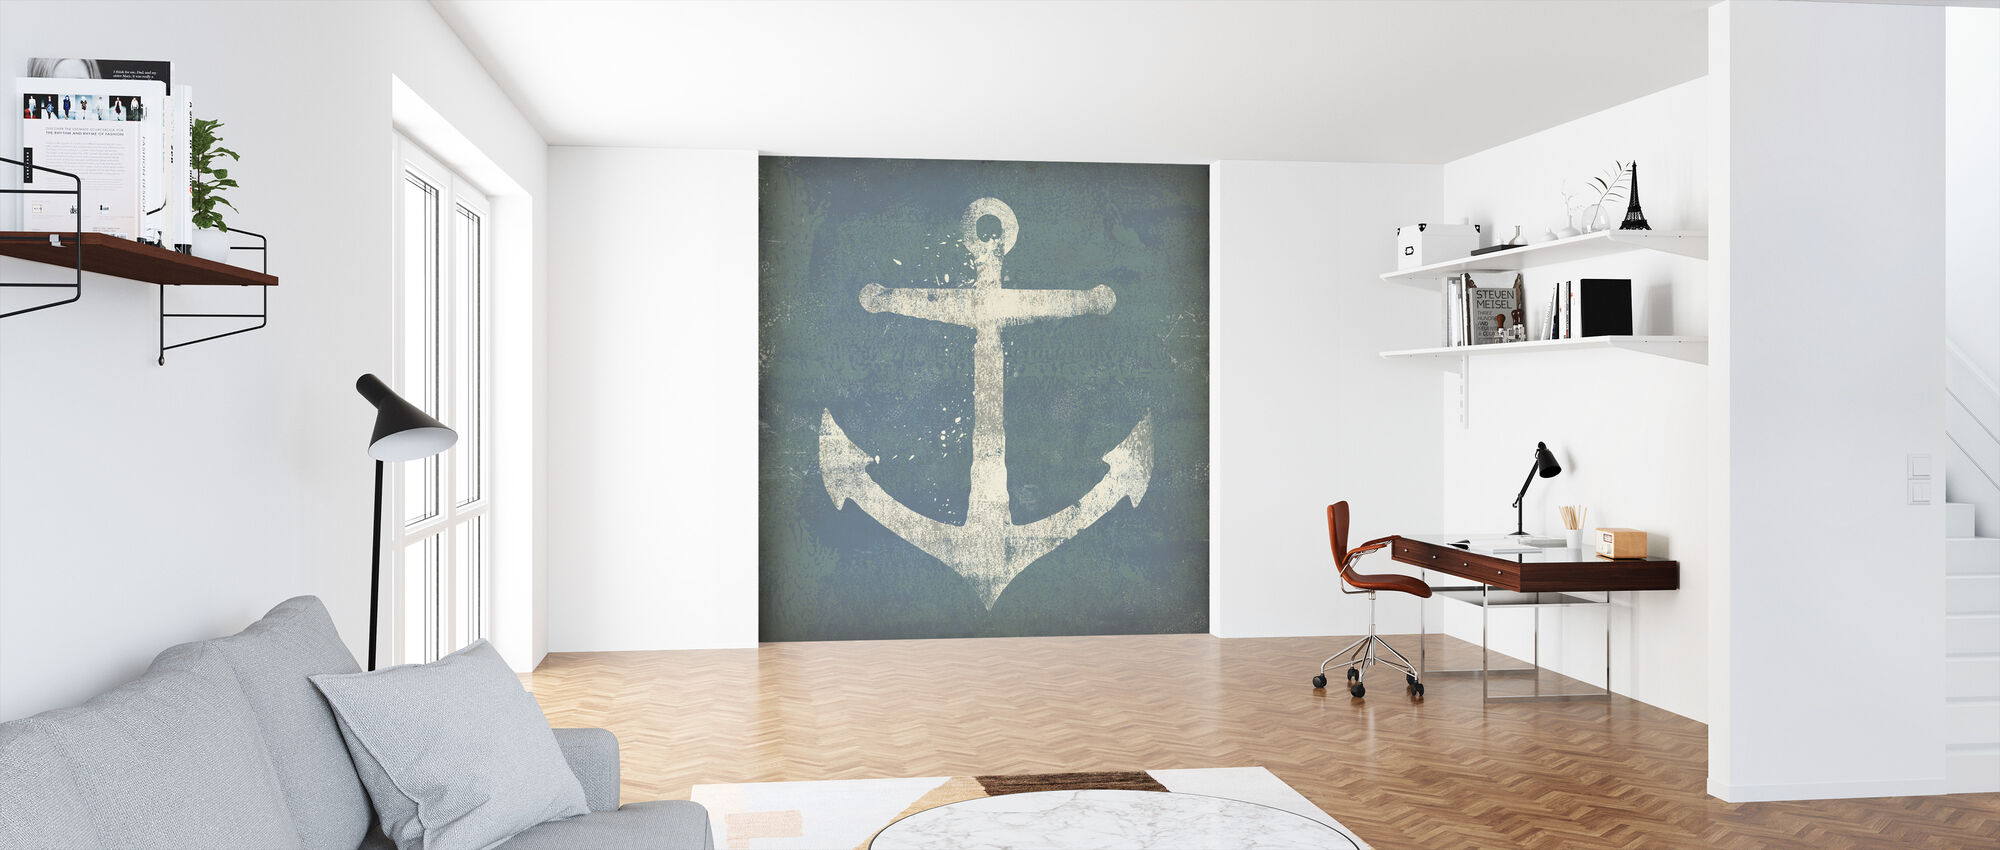 Anchor Square - Wallpaper - Office